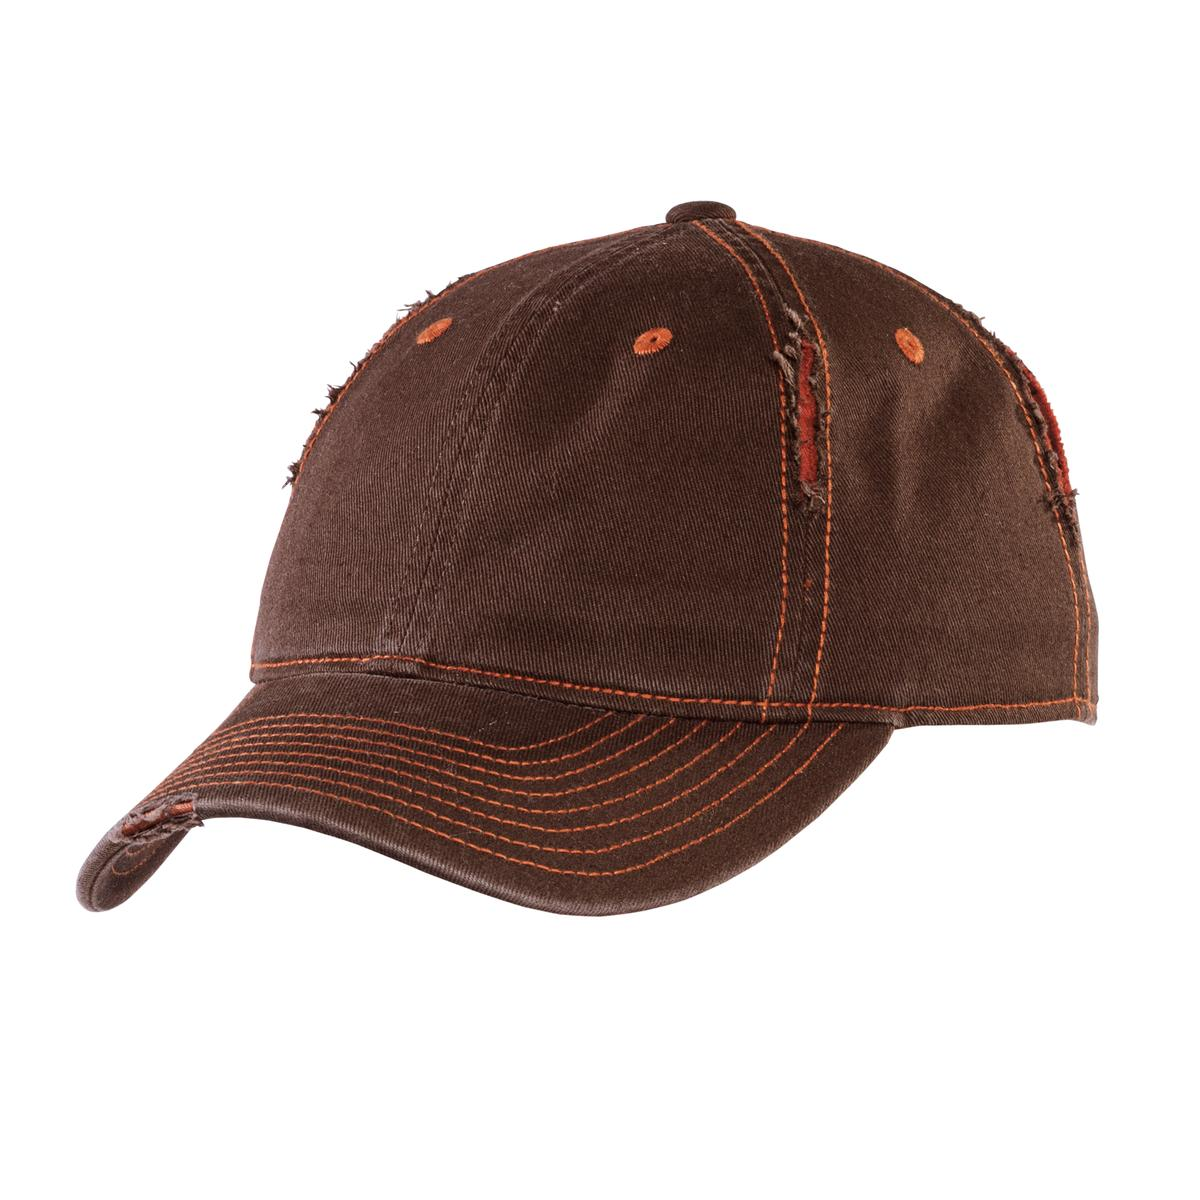 District ®  Rip and Distressed Cap DT612 - Brown/Rust